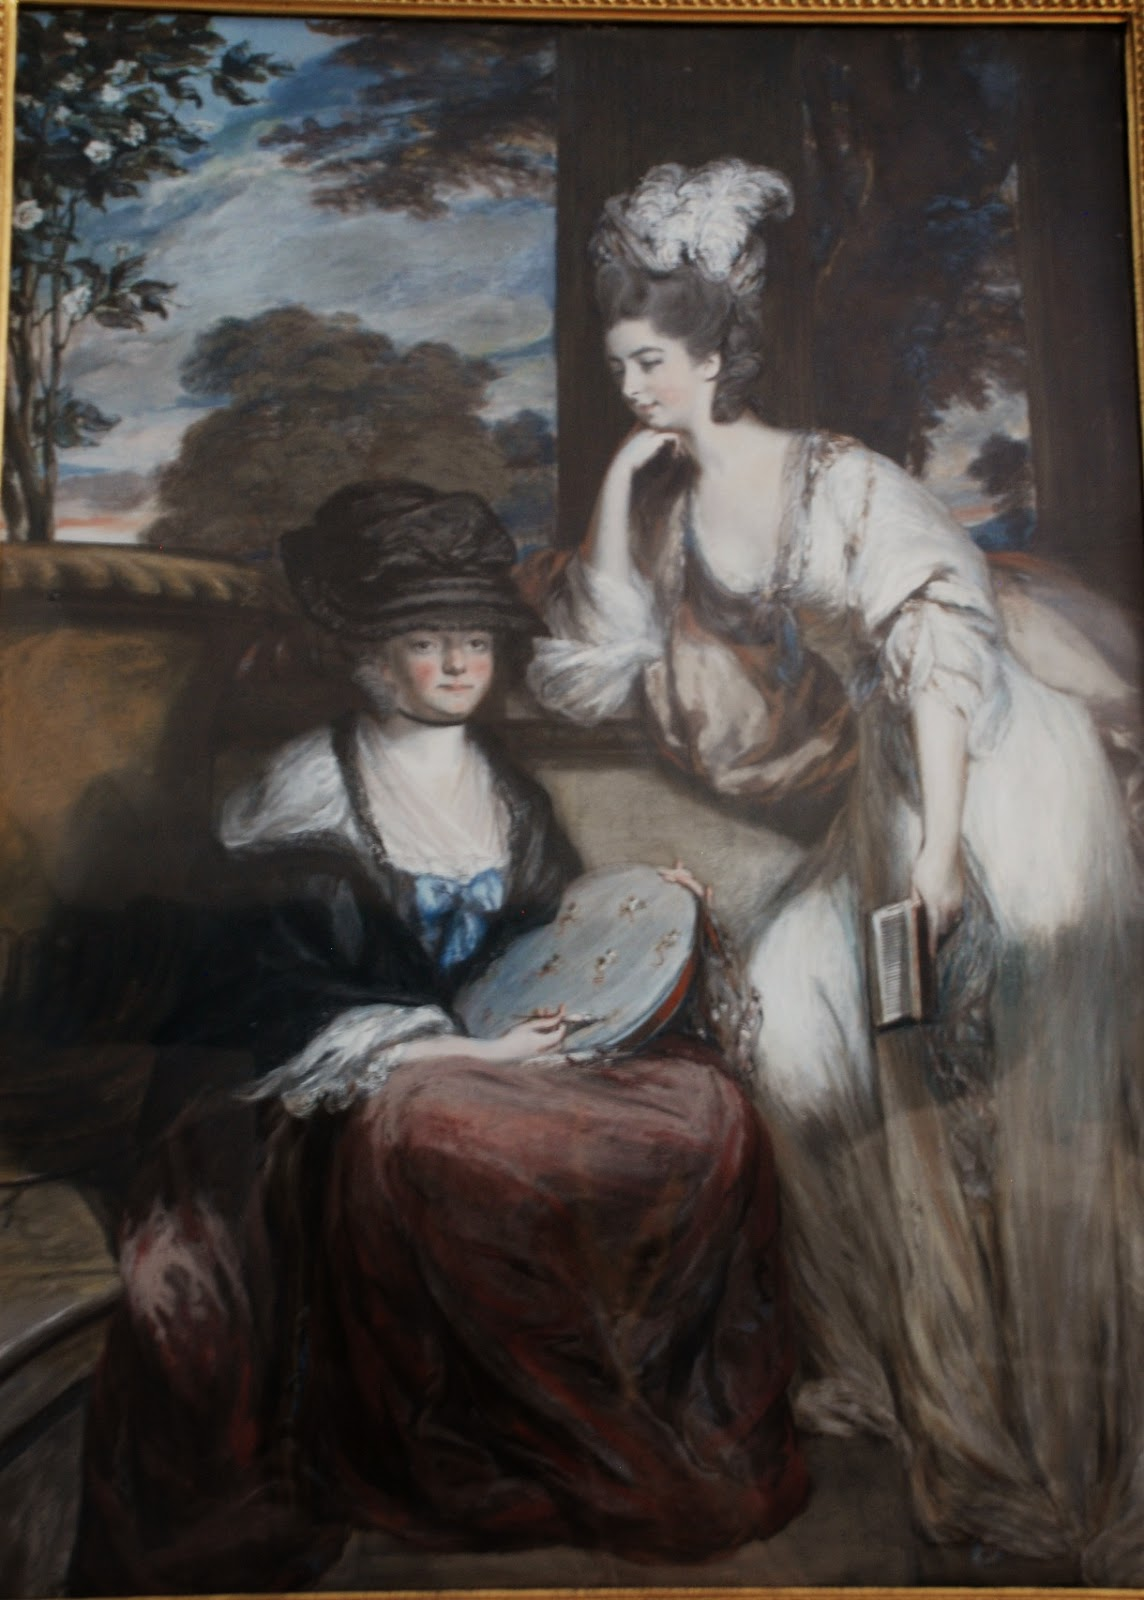 Formerly Sarah Anne Child and her mother Mrs Robert Child